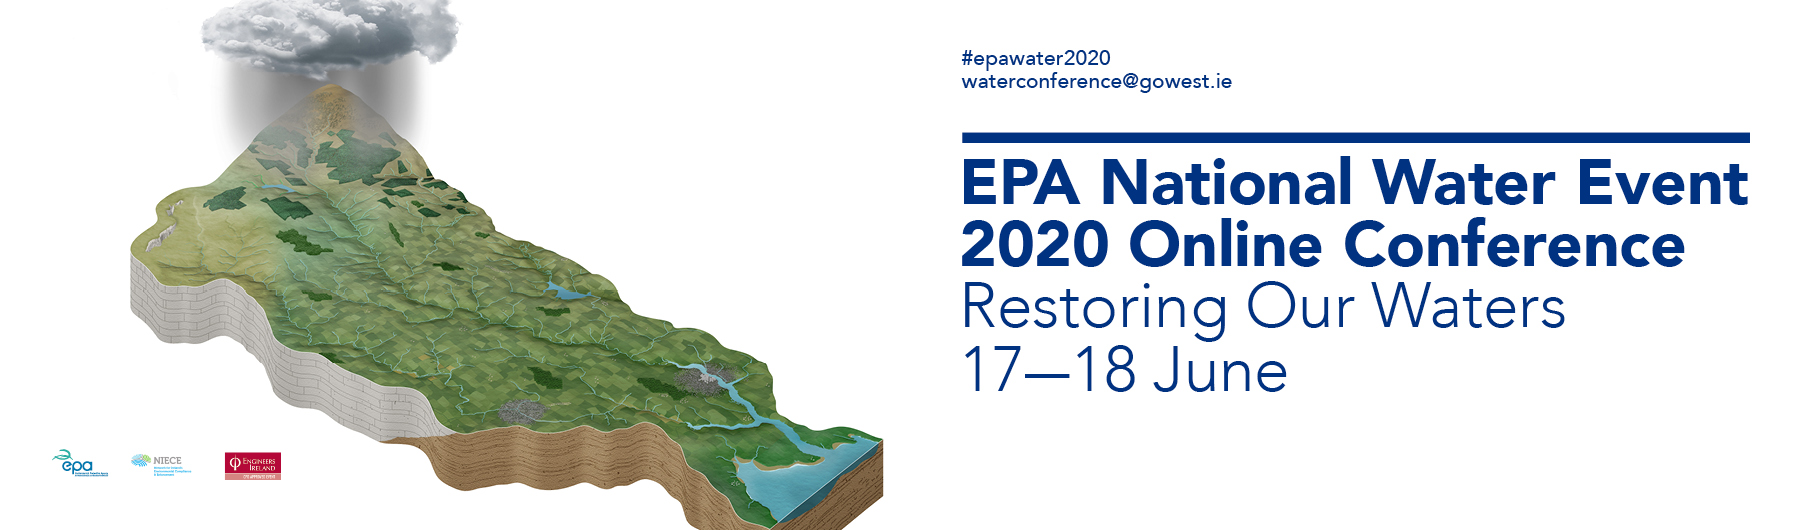 EPA National Water Event 2020